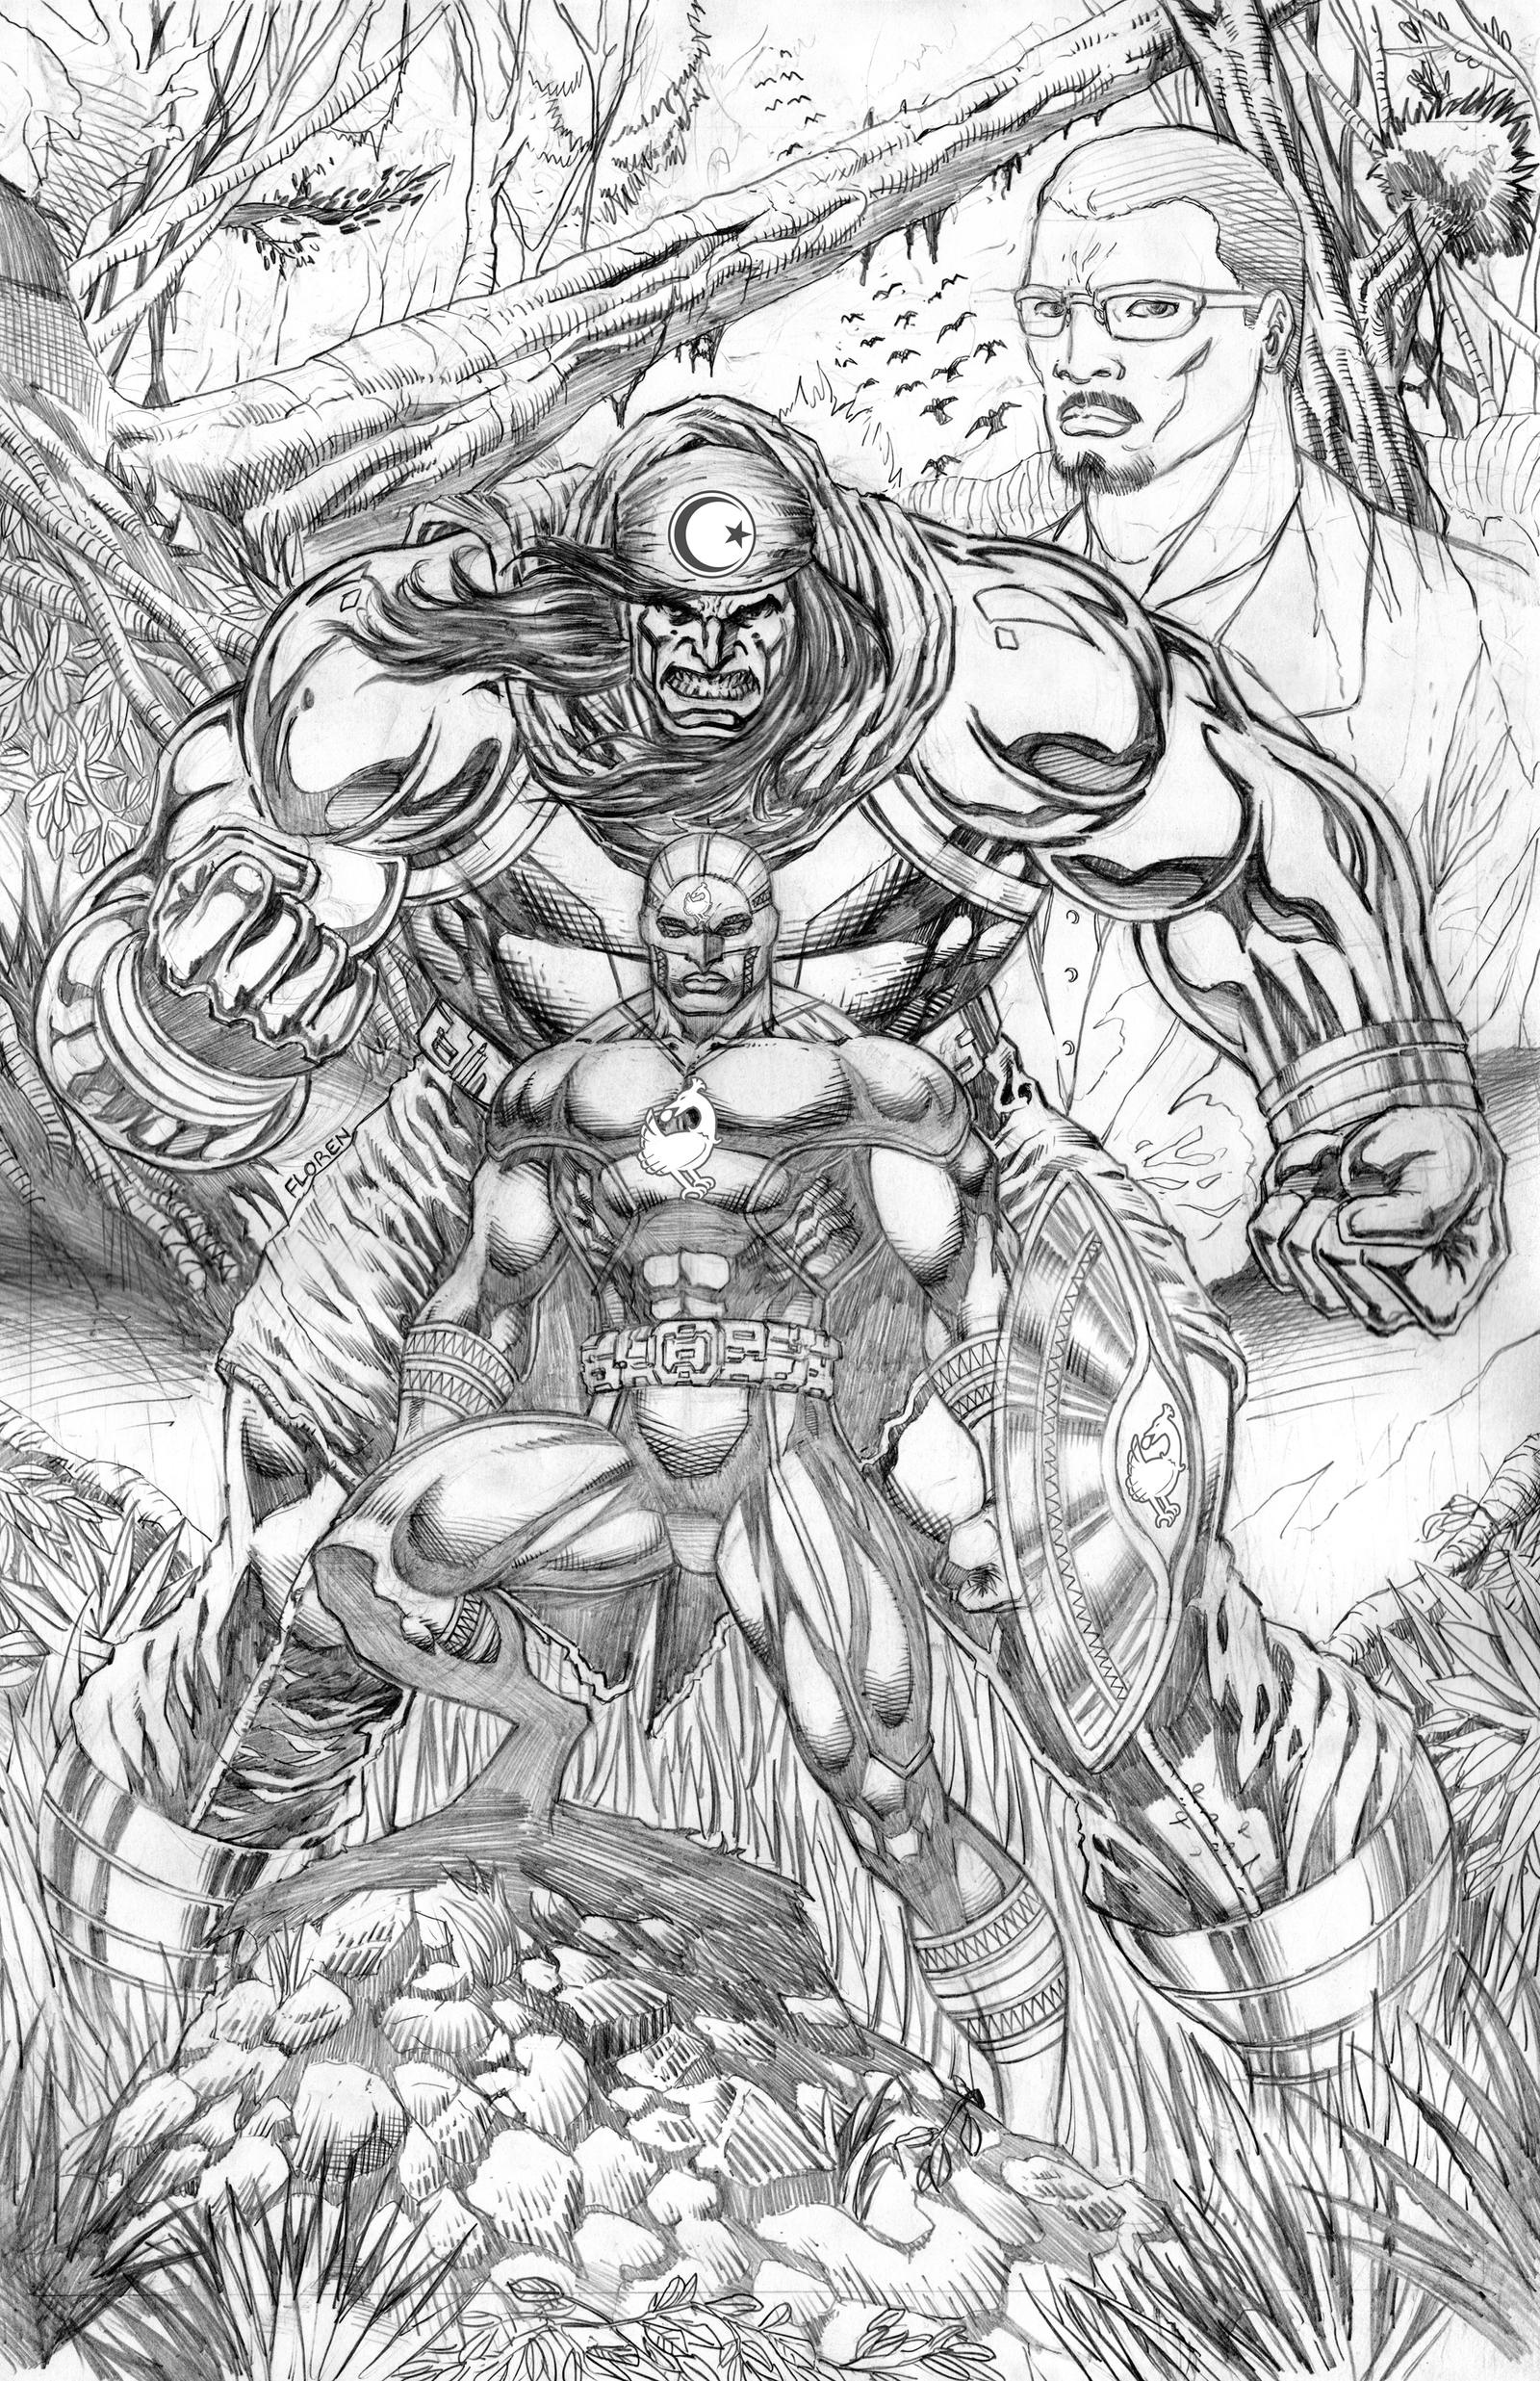 Cover Art: Captain Africa and Anzar Pencils by florencuevas